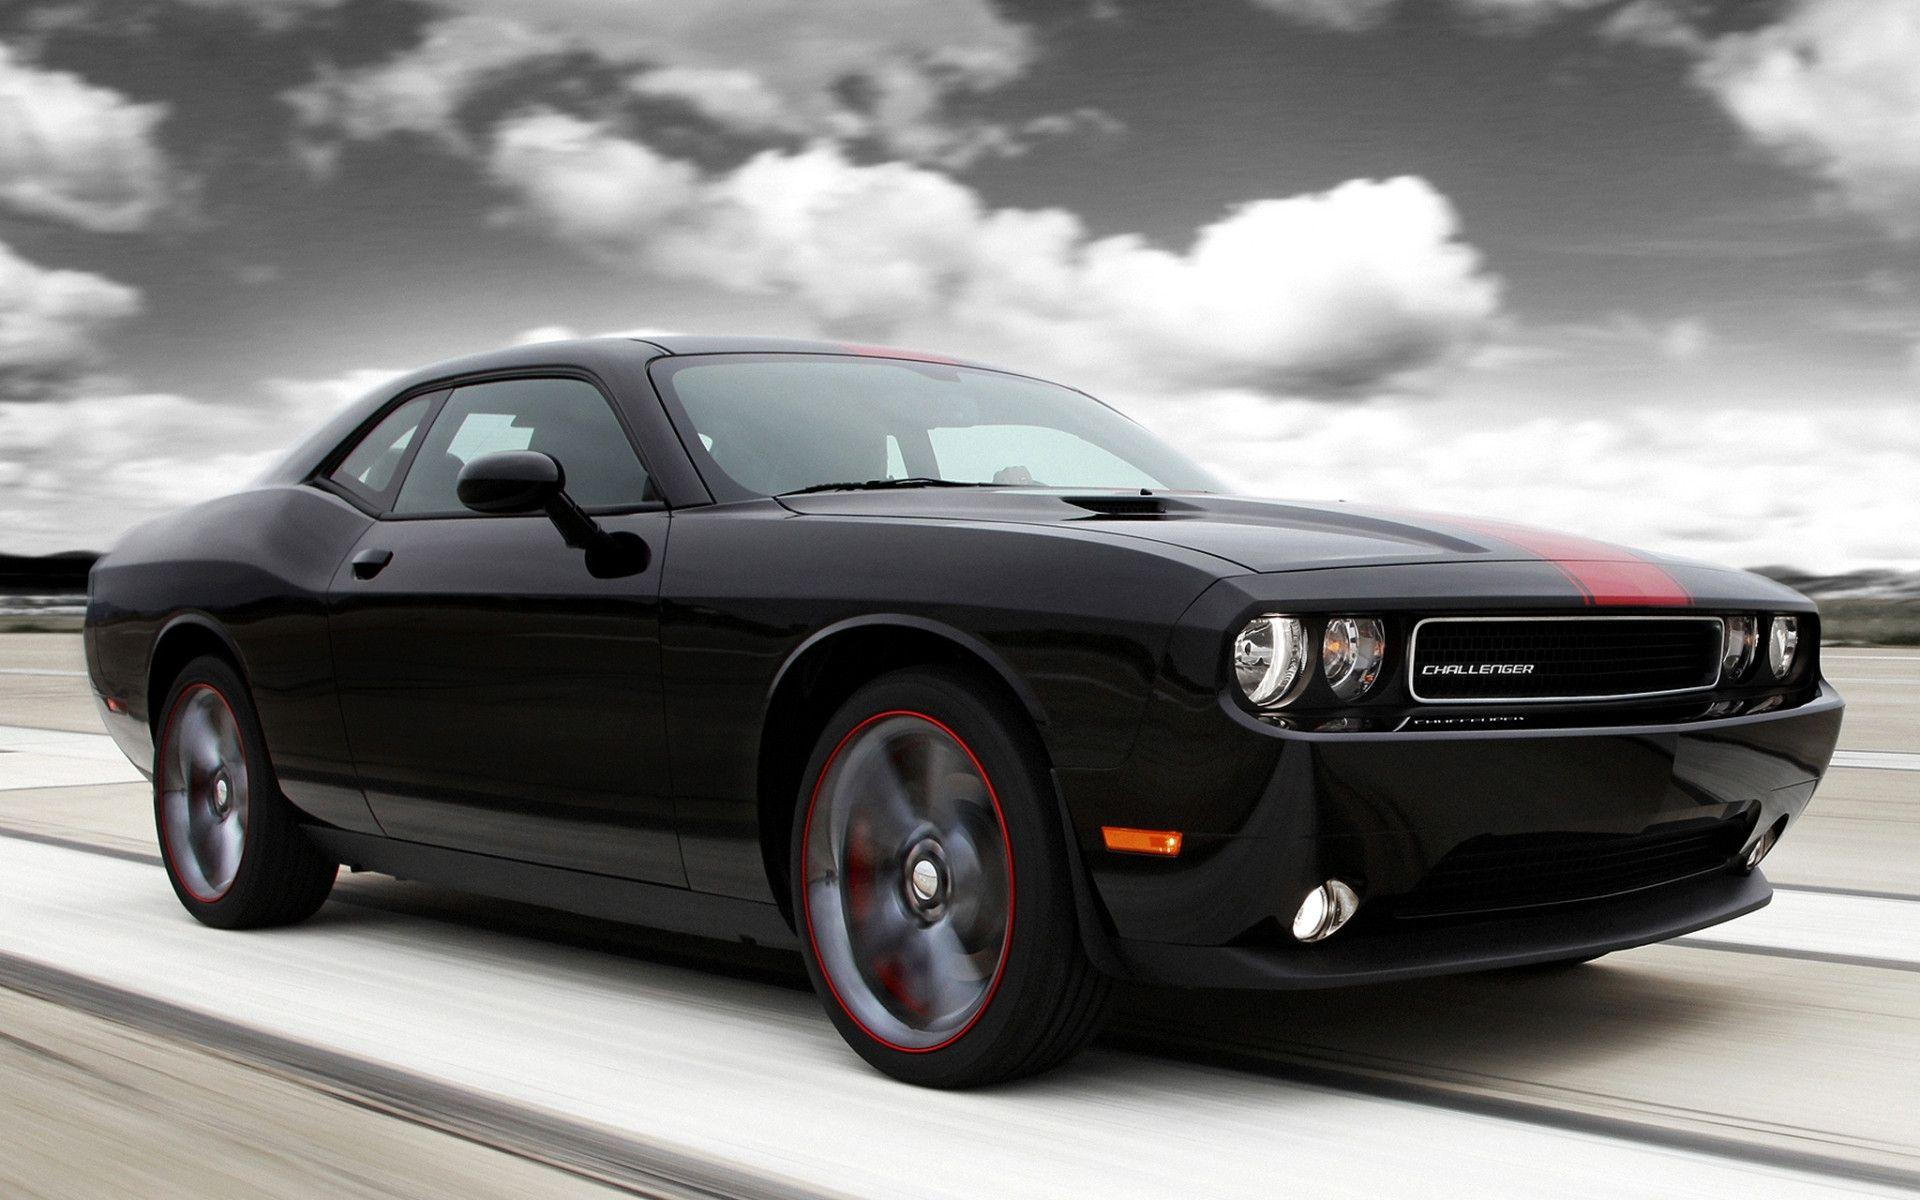 70 Dodge Charger Wallpapers